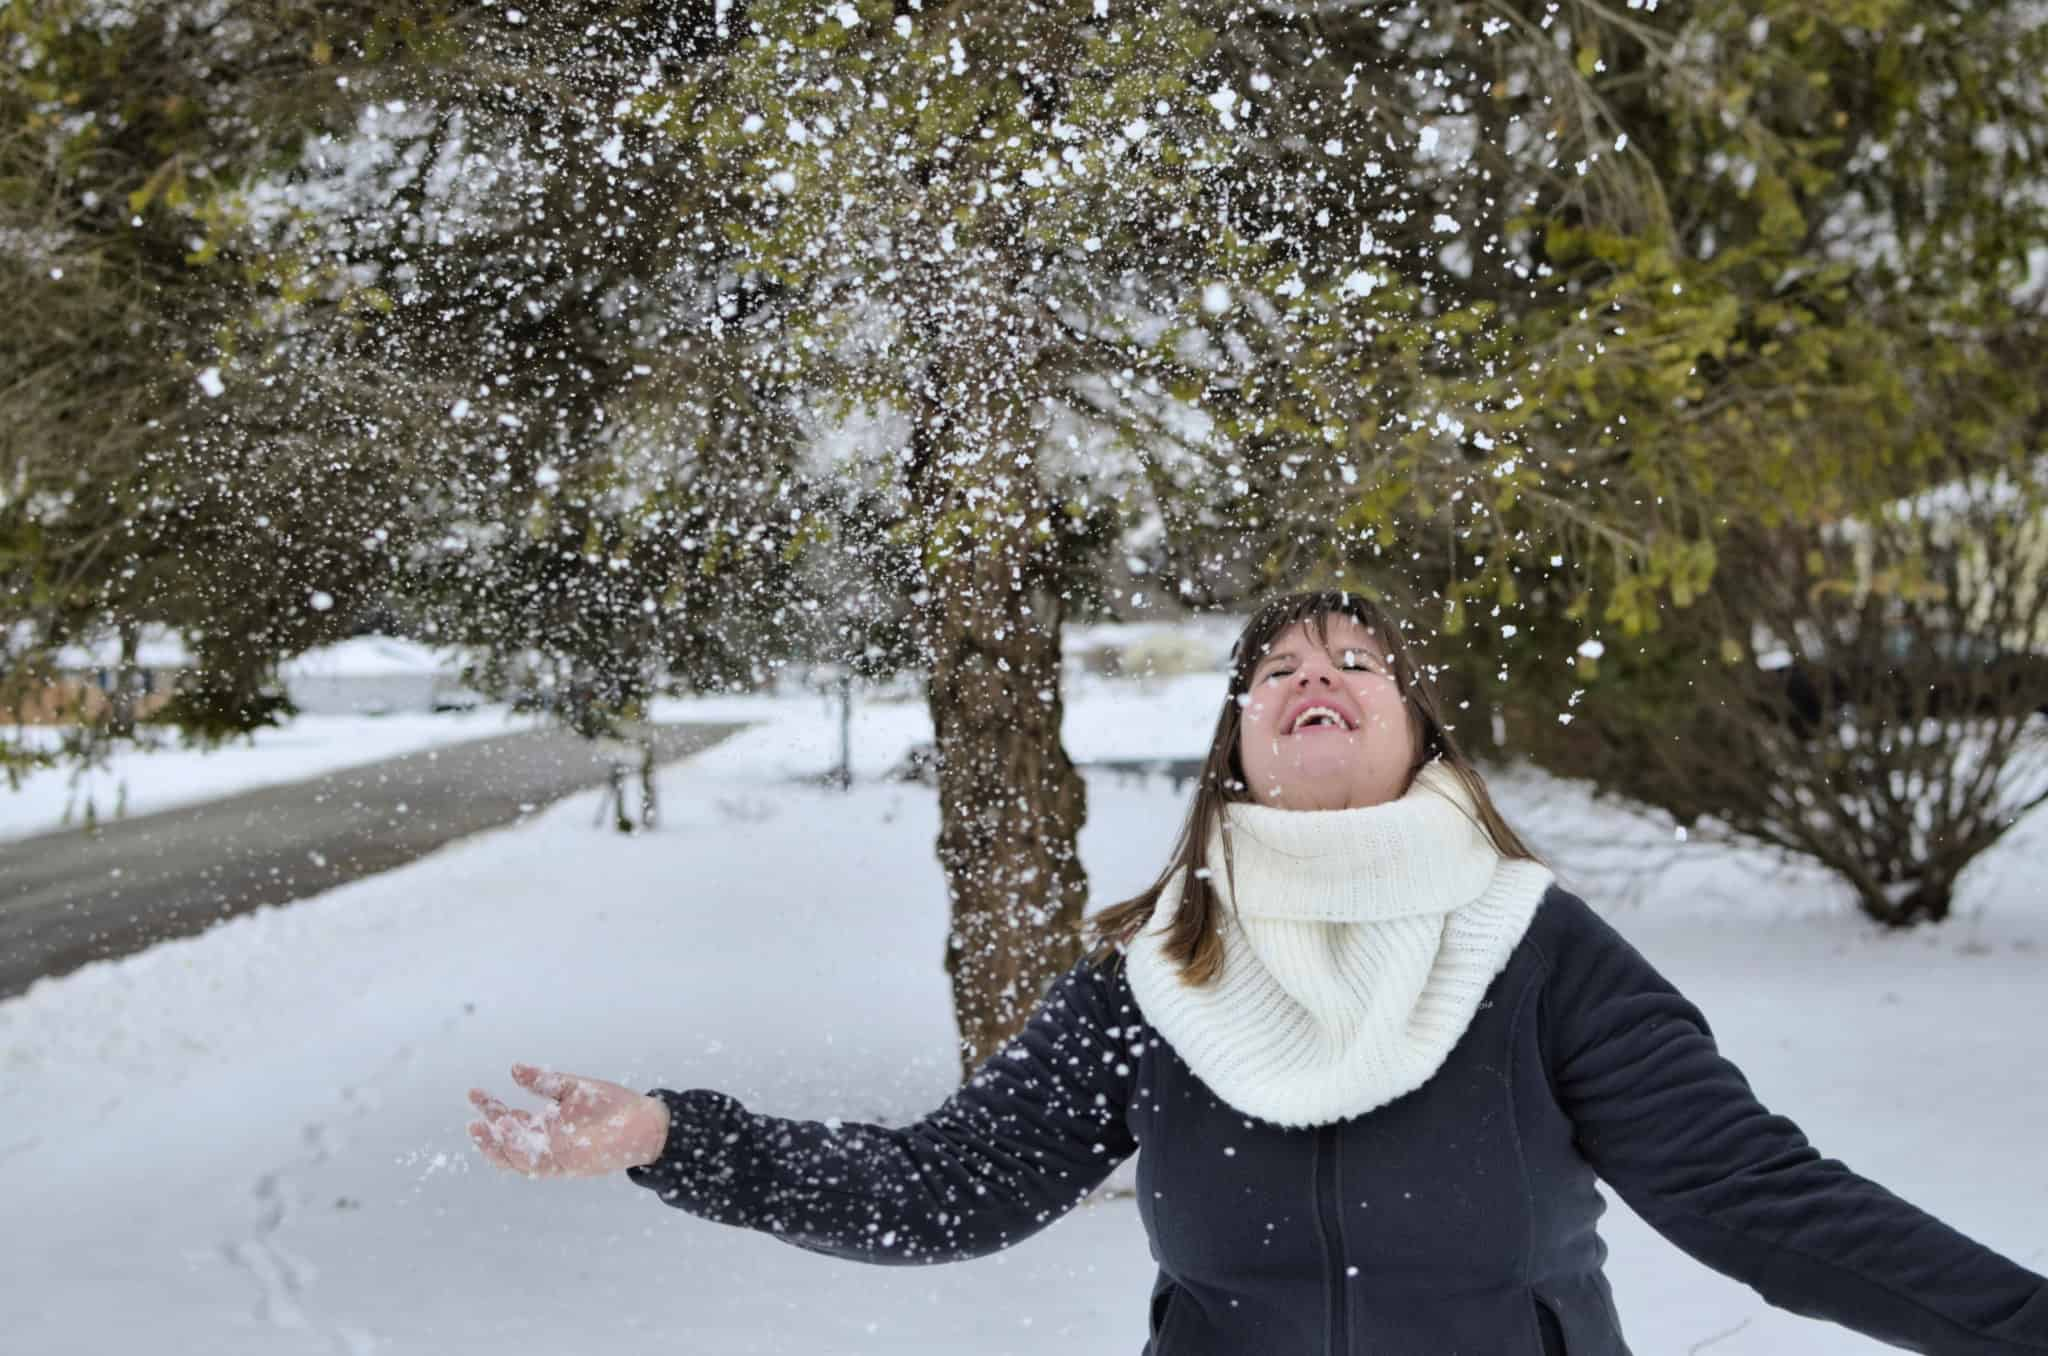 woman laughing and throwing up snow in the winter